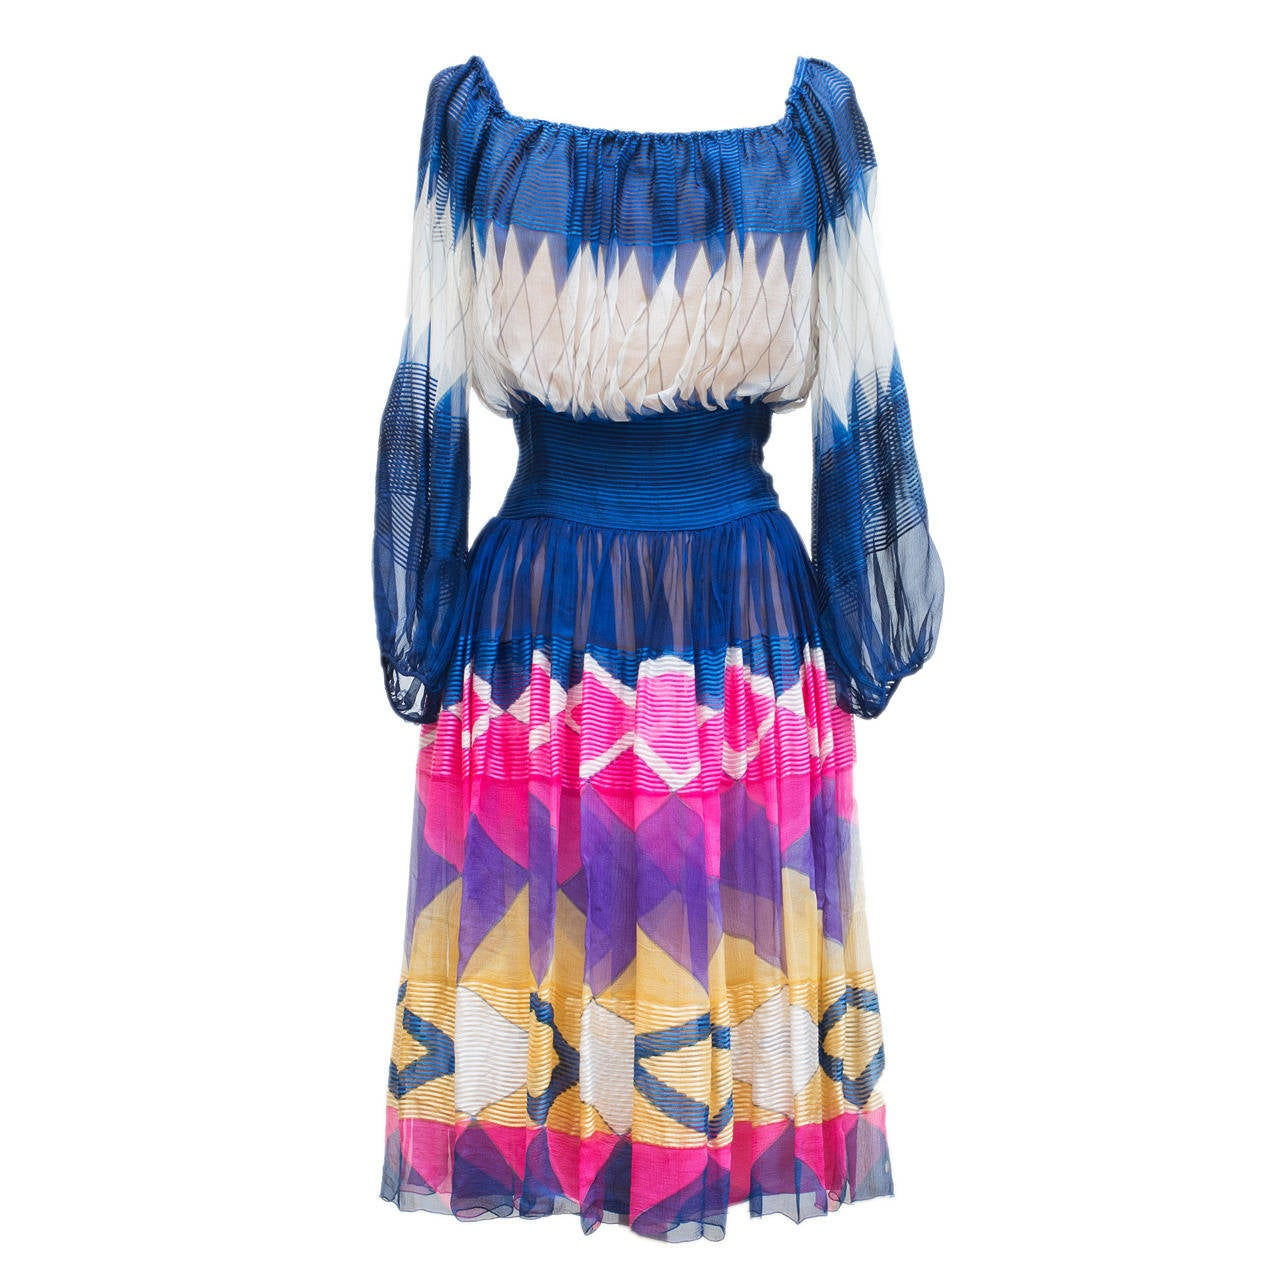 Jean Patou Haute Couture Amazing Multicolor Chiffon Silk Dress